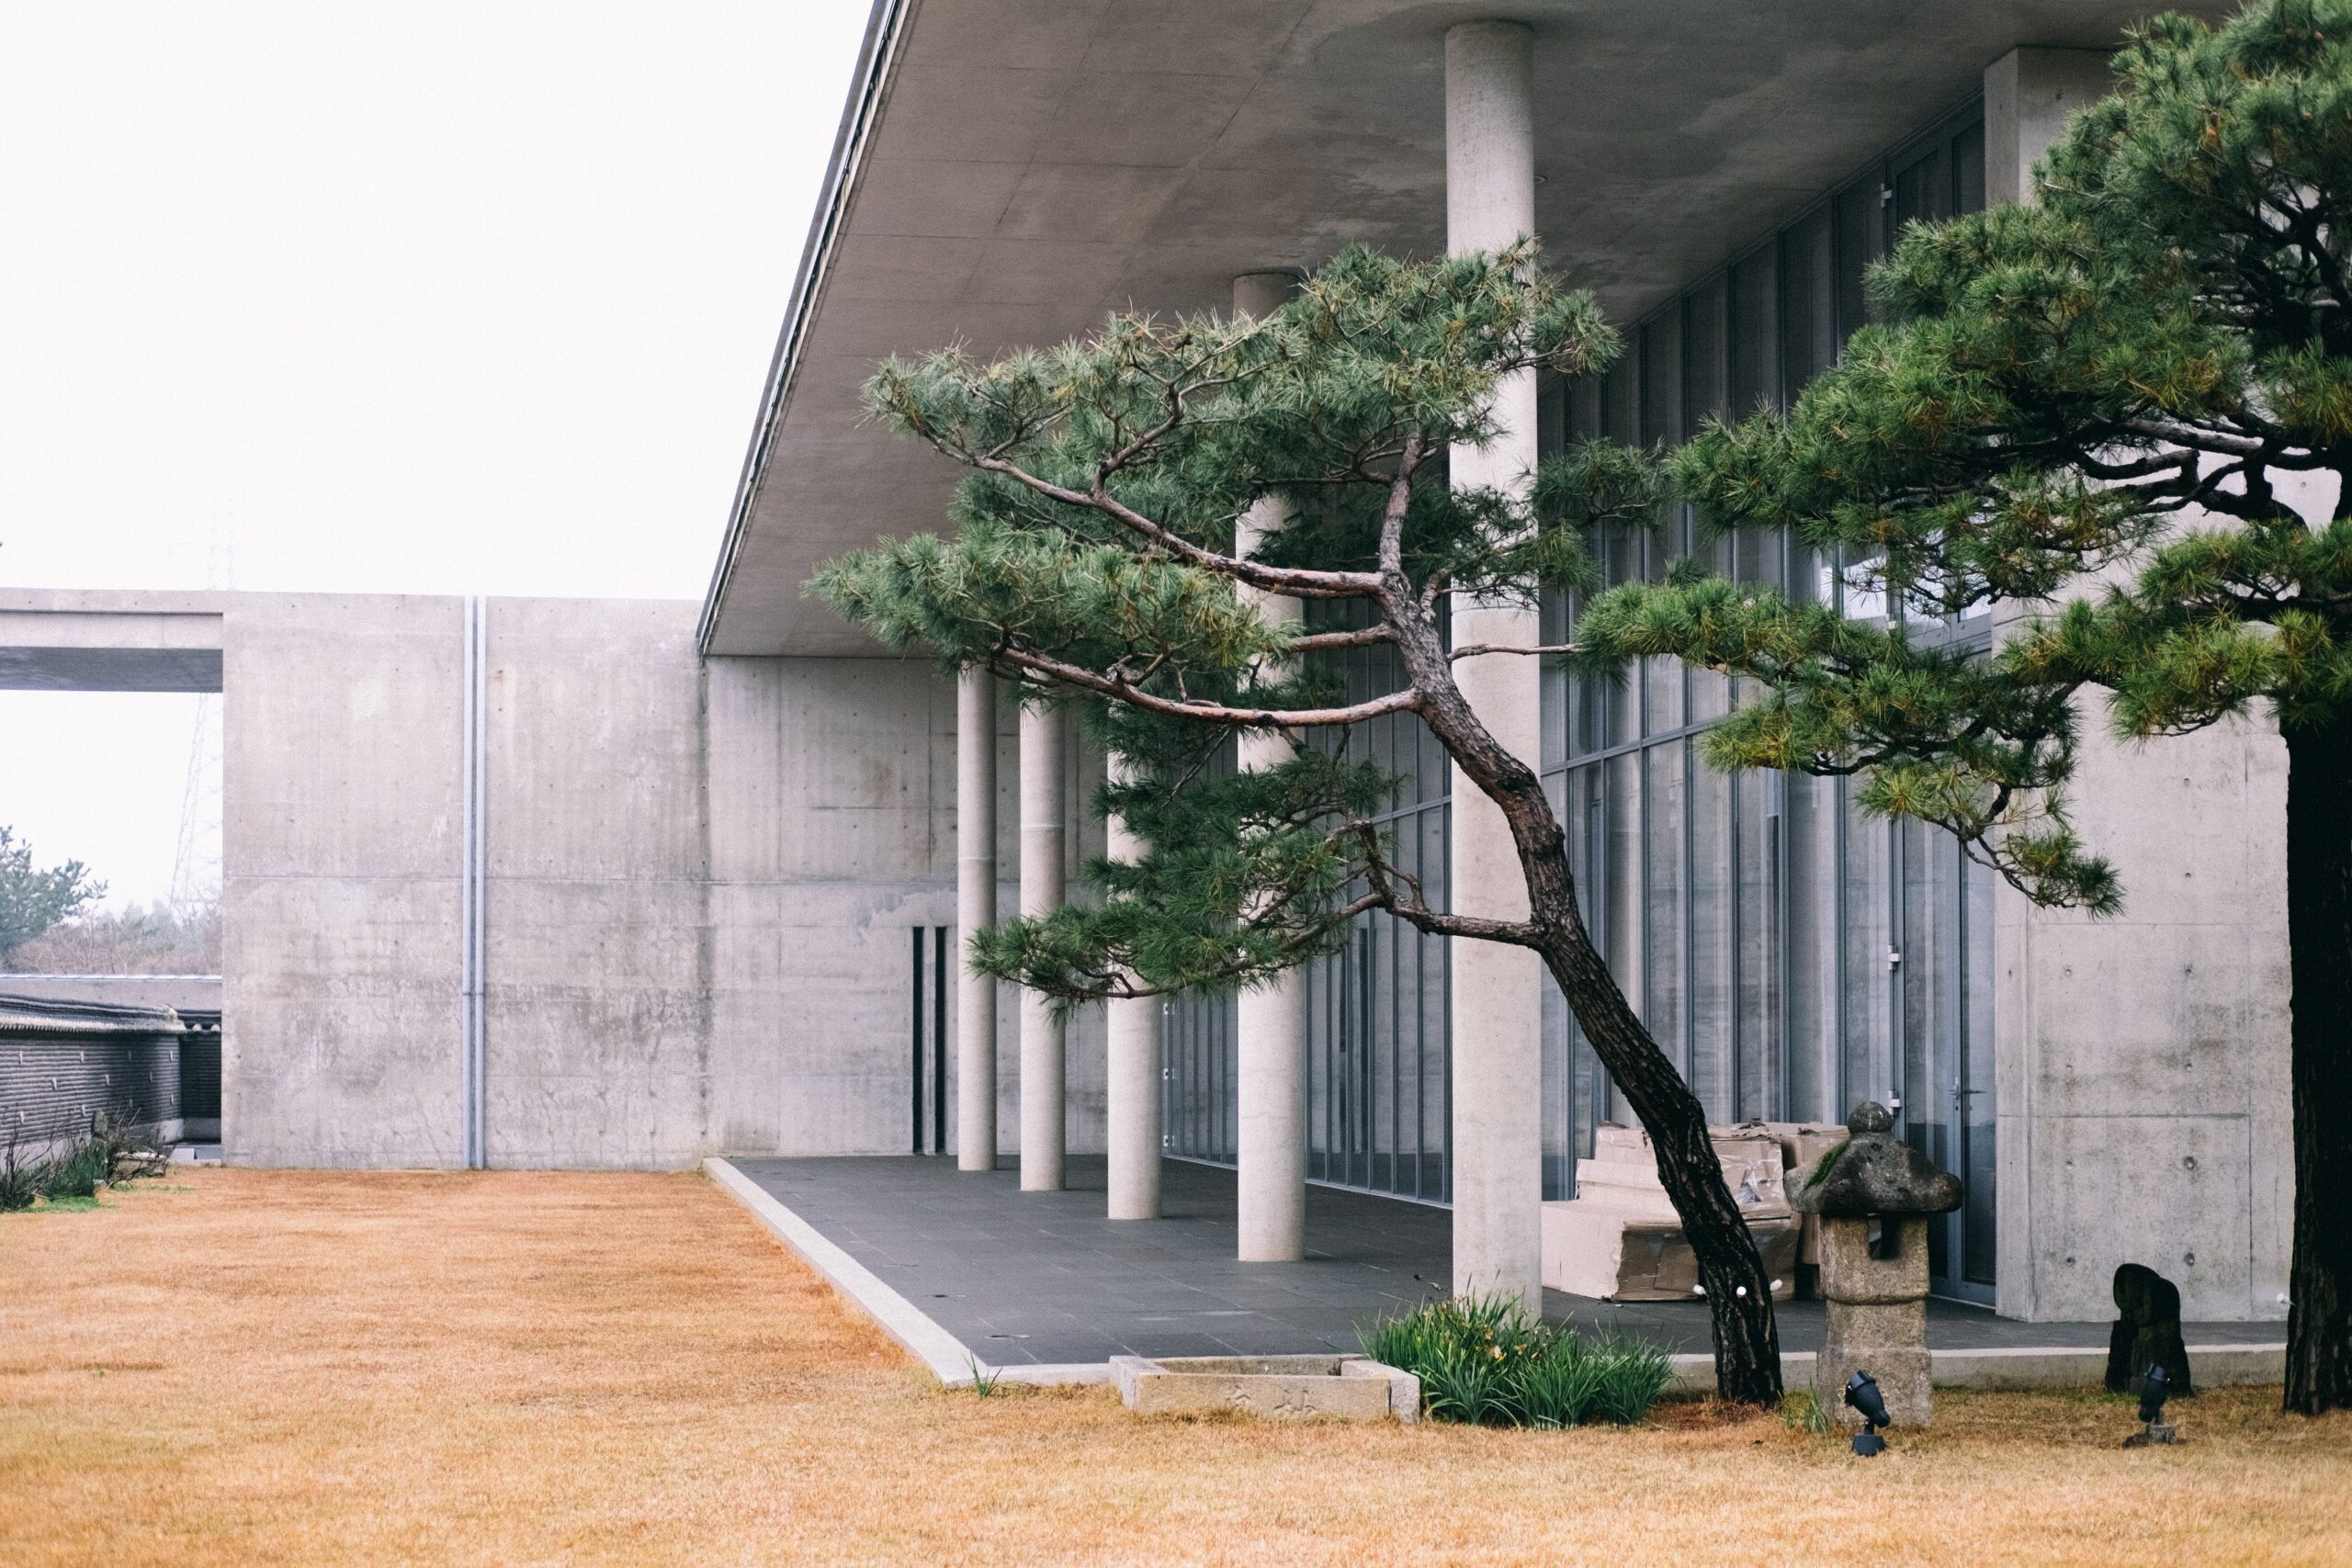 kawai-so-Japanese Tokyo contemporary building with landscaped area-unsplash